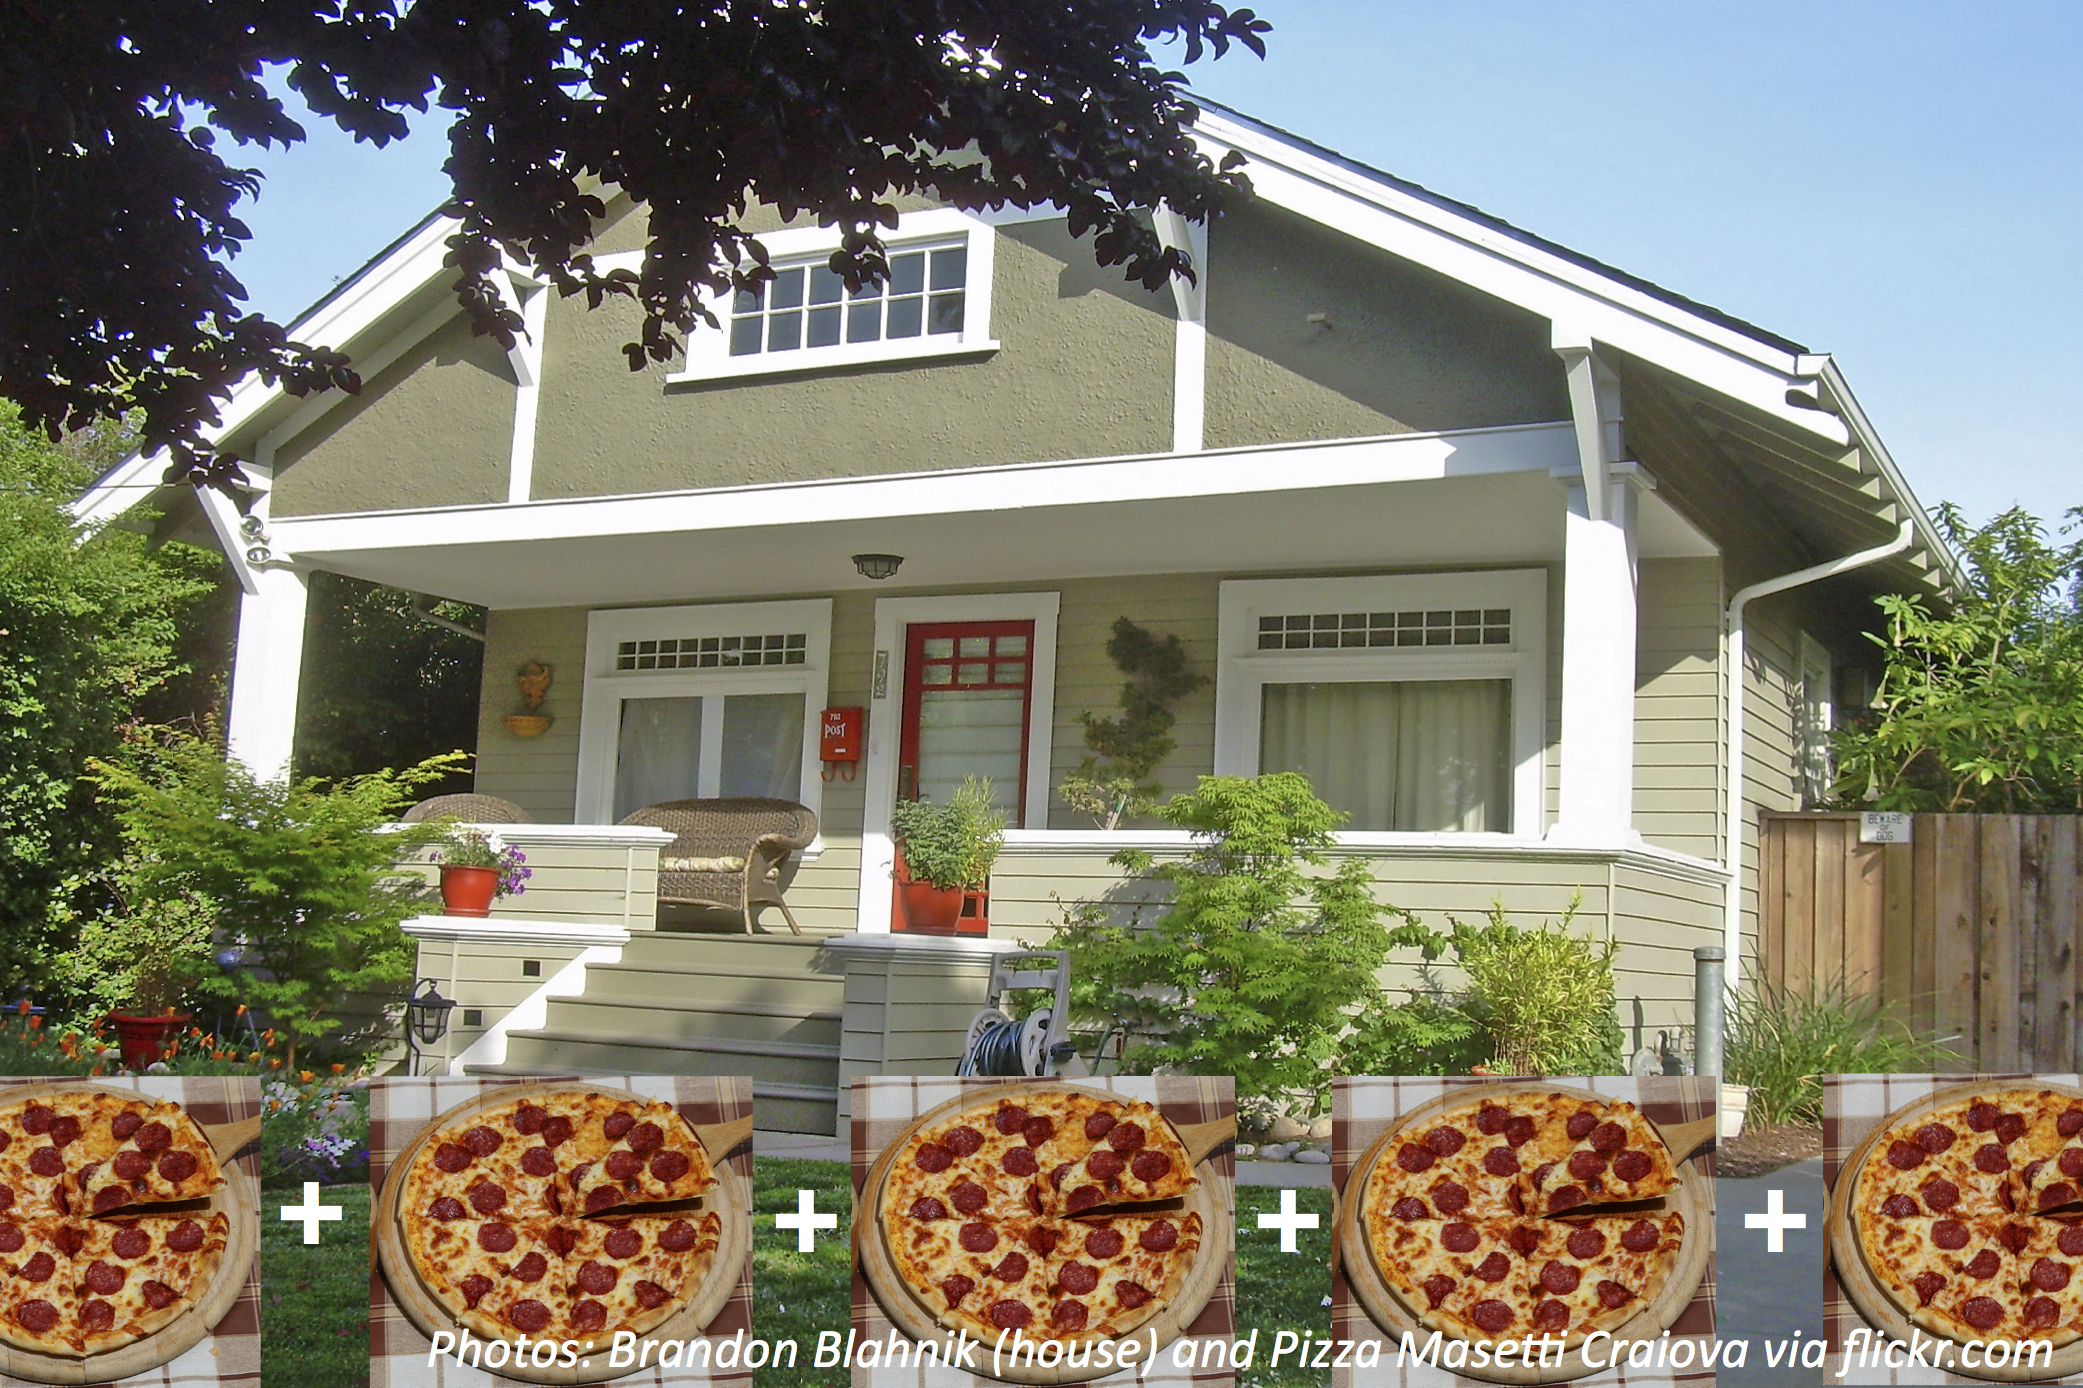 Home Sweet Pizza